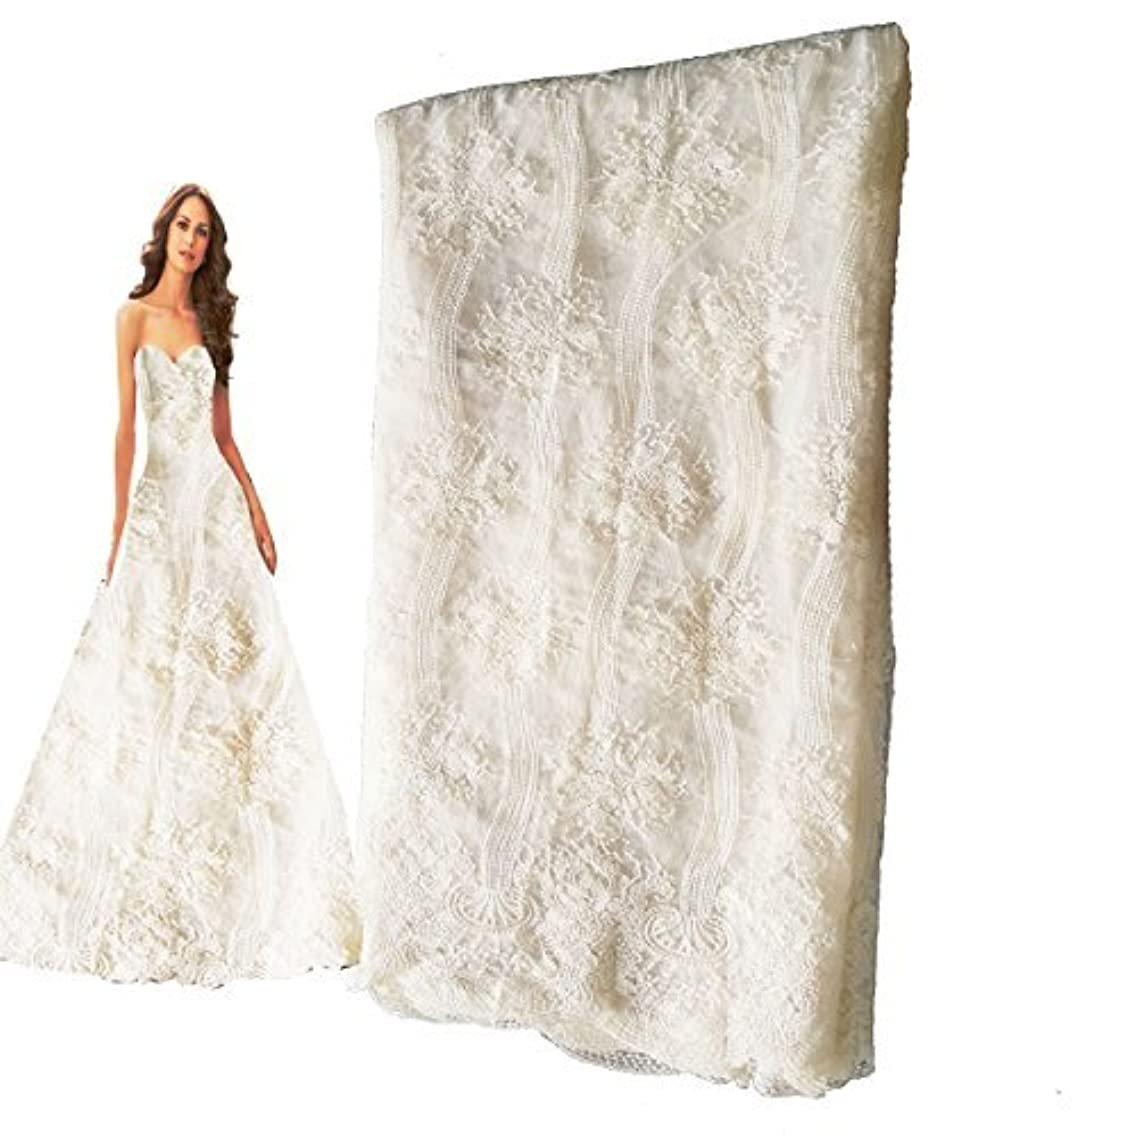 Fongbay African Lace Fabric Milk Shredded Embroidered Lace Fabrics Suitable for Party Wedding Dress Short Skirt or Handmade DIY, 2.1Yards (12White)